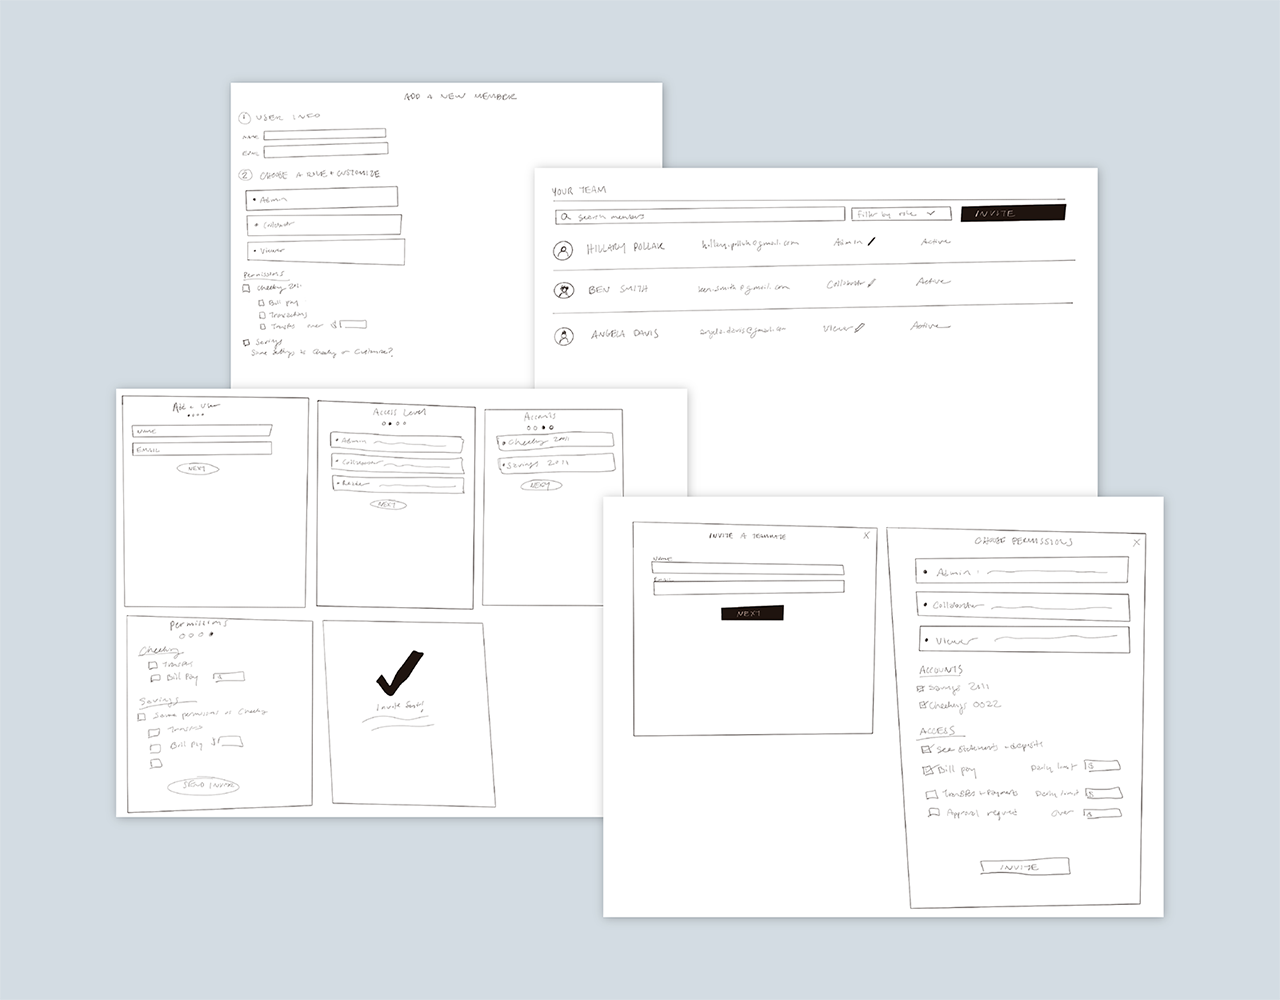 Business banking UX / UI wireframe sketches depicting part of the user experience design process at Narmi.